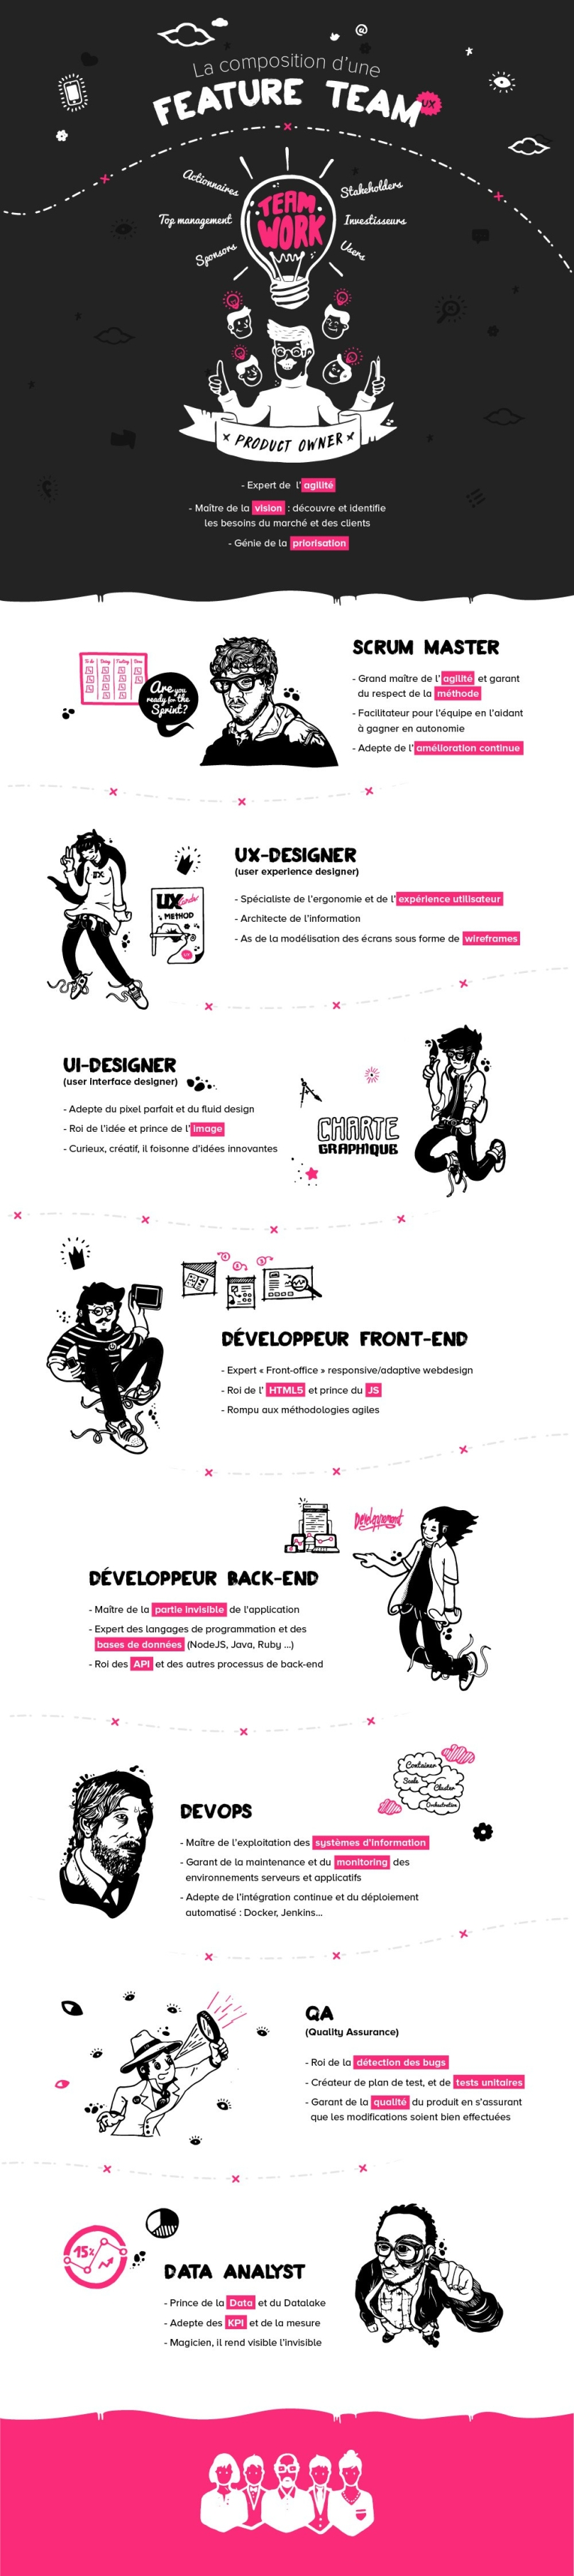 infographie-feature-team